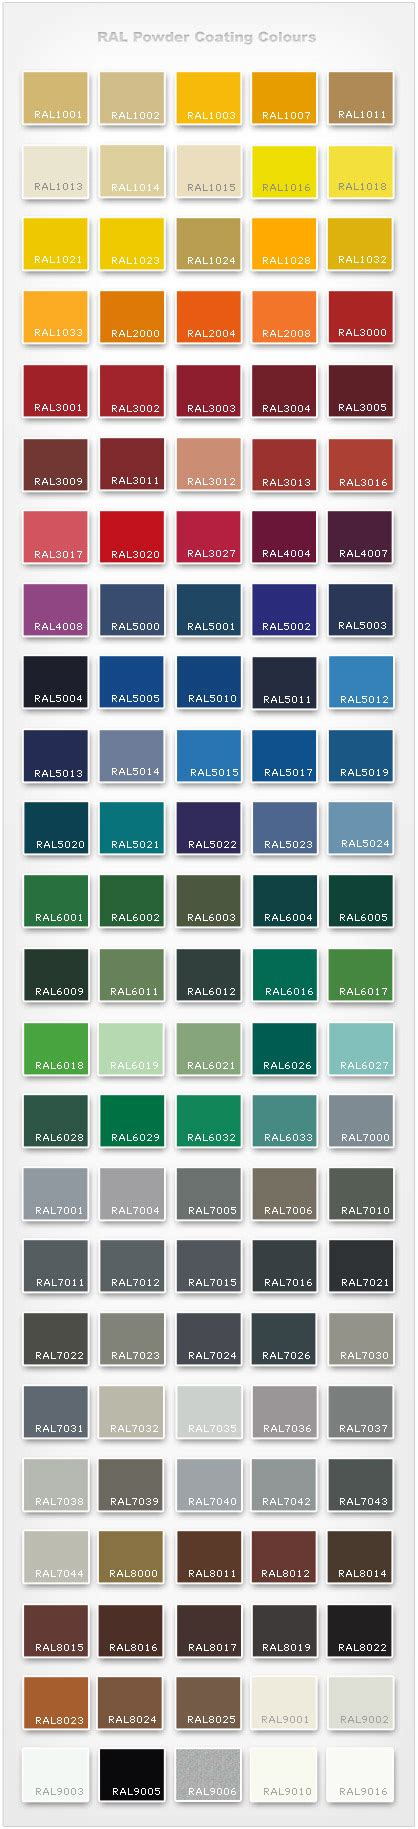 jotun ral color chart related keywords suggestions jotun ral color chart keywords